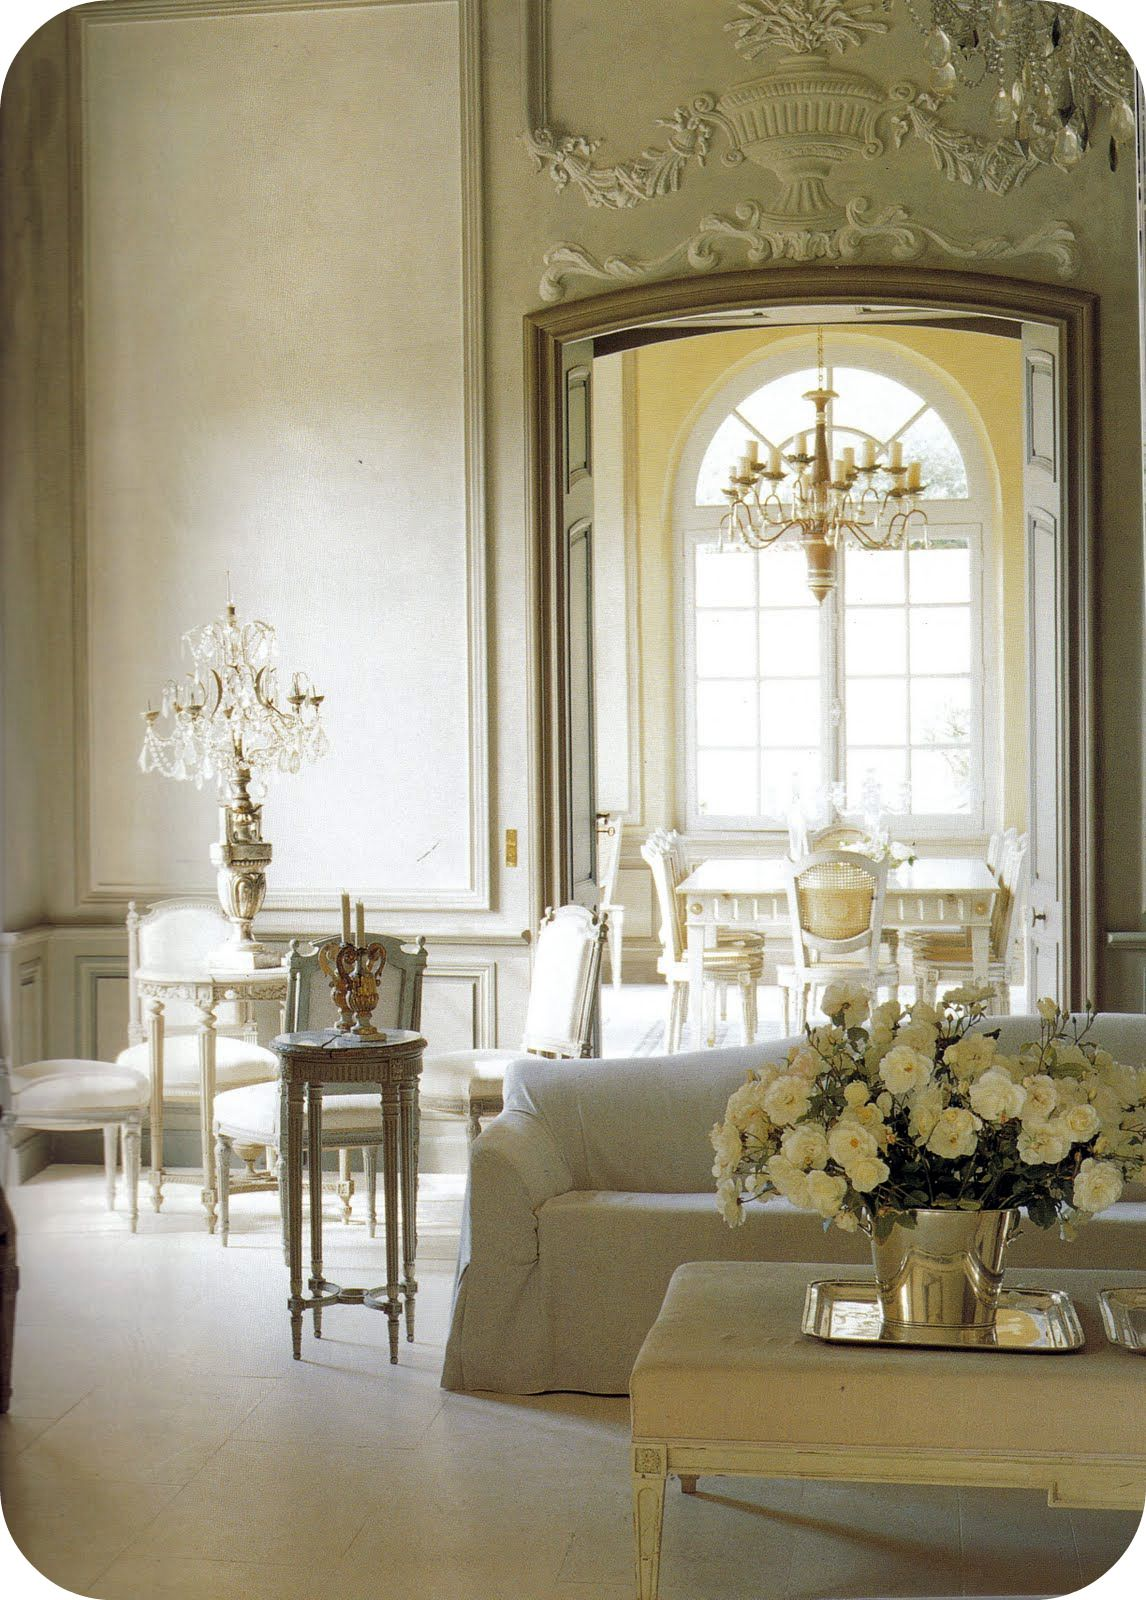 Classic formal french interior unknown source image via book of secrets